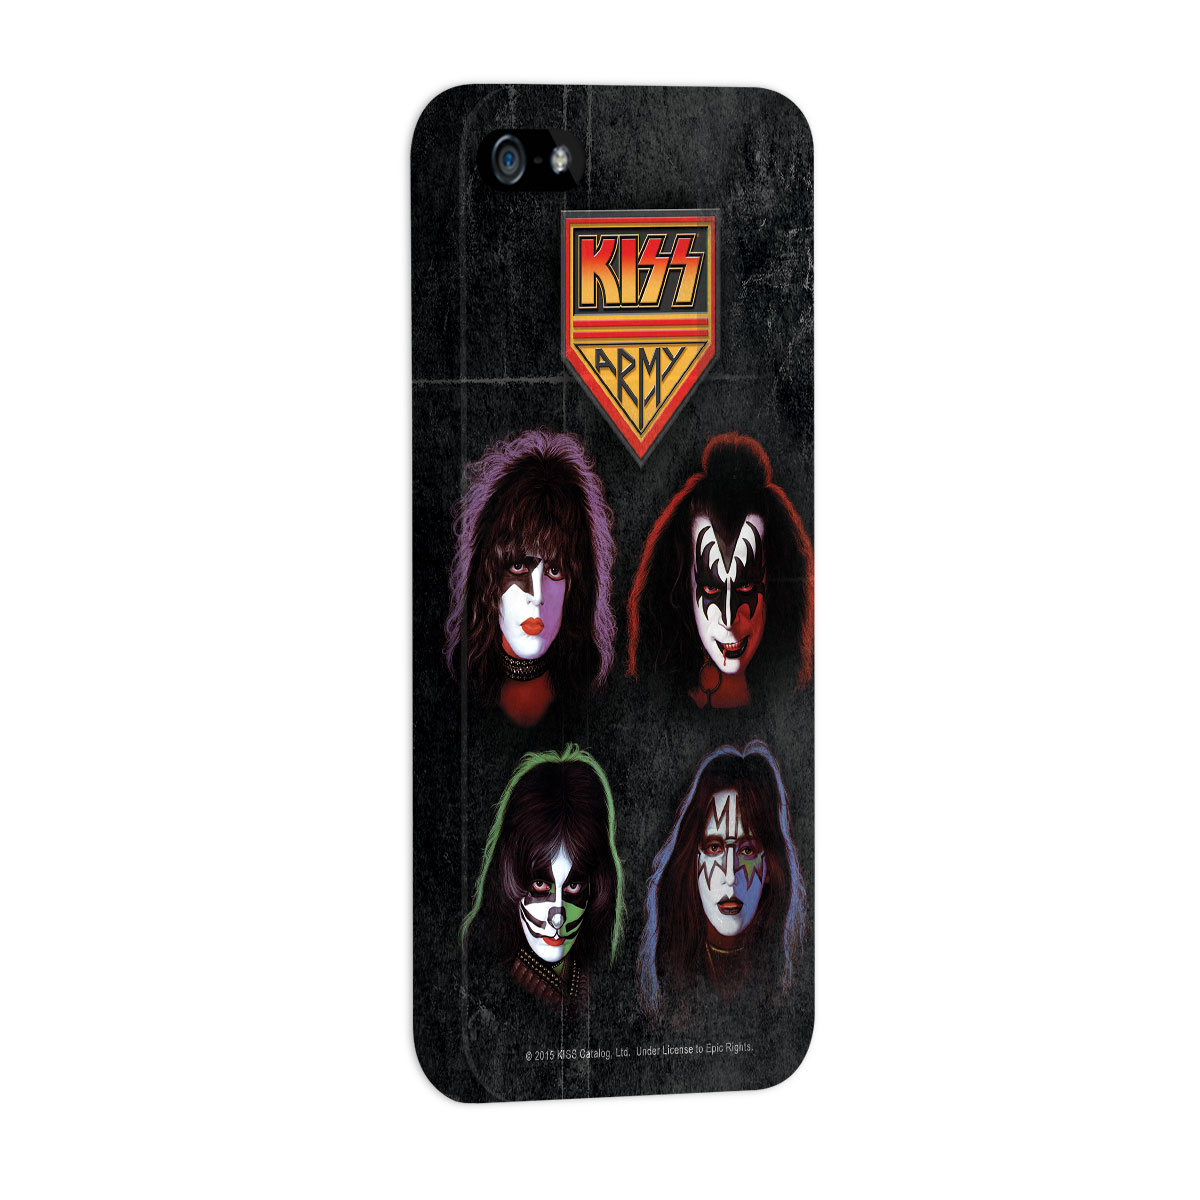 Capa para iPhone 5/5S Kiss Army